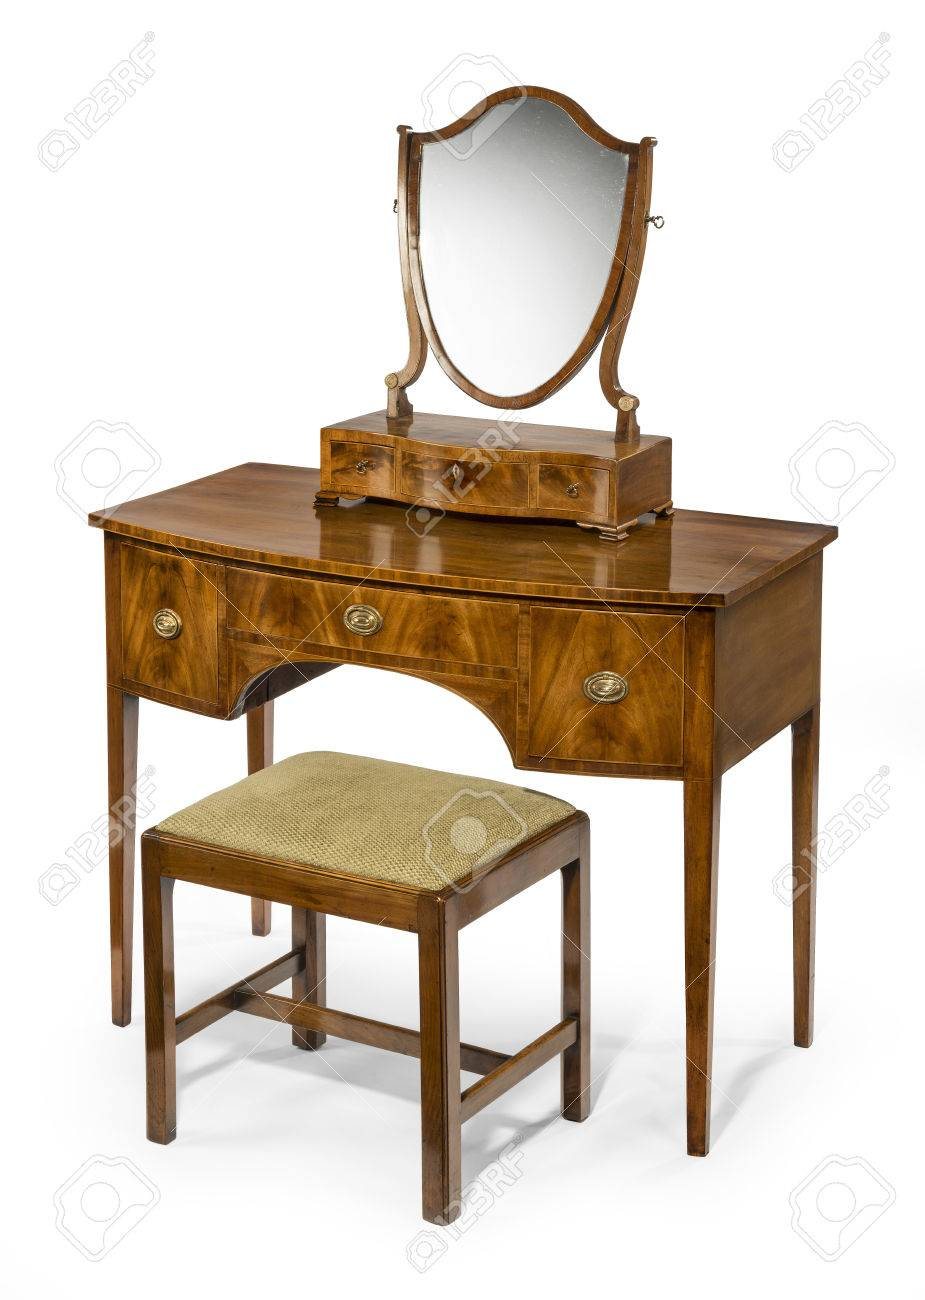 Old antique dressing table set with box mirror isolated with clipping paths  for background and mirror - Old Antique Dressing Table Set With Box Mirror Isolated With.. Stock